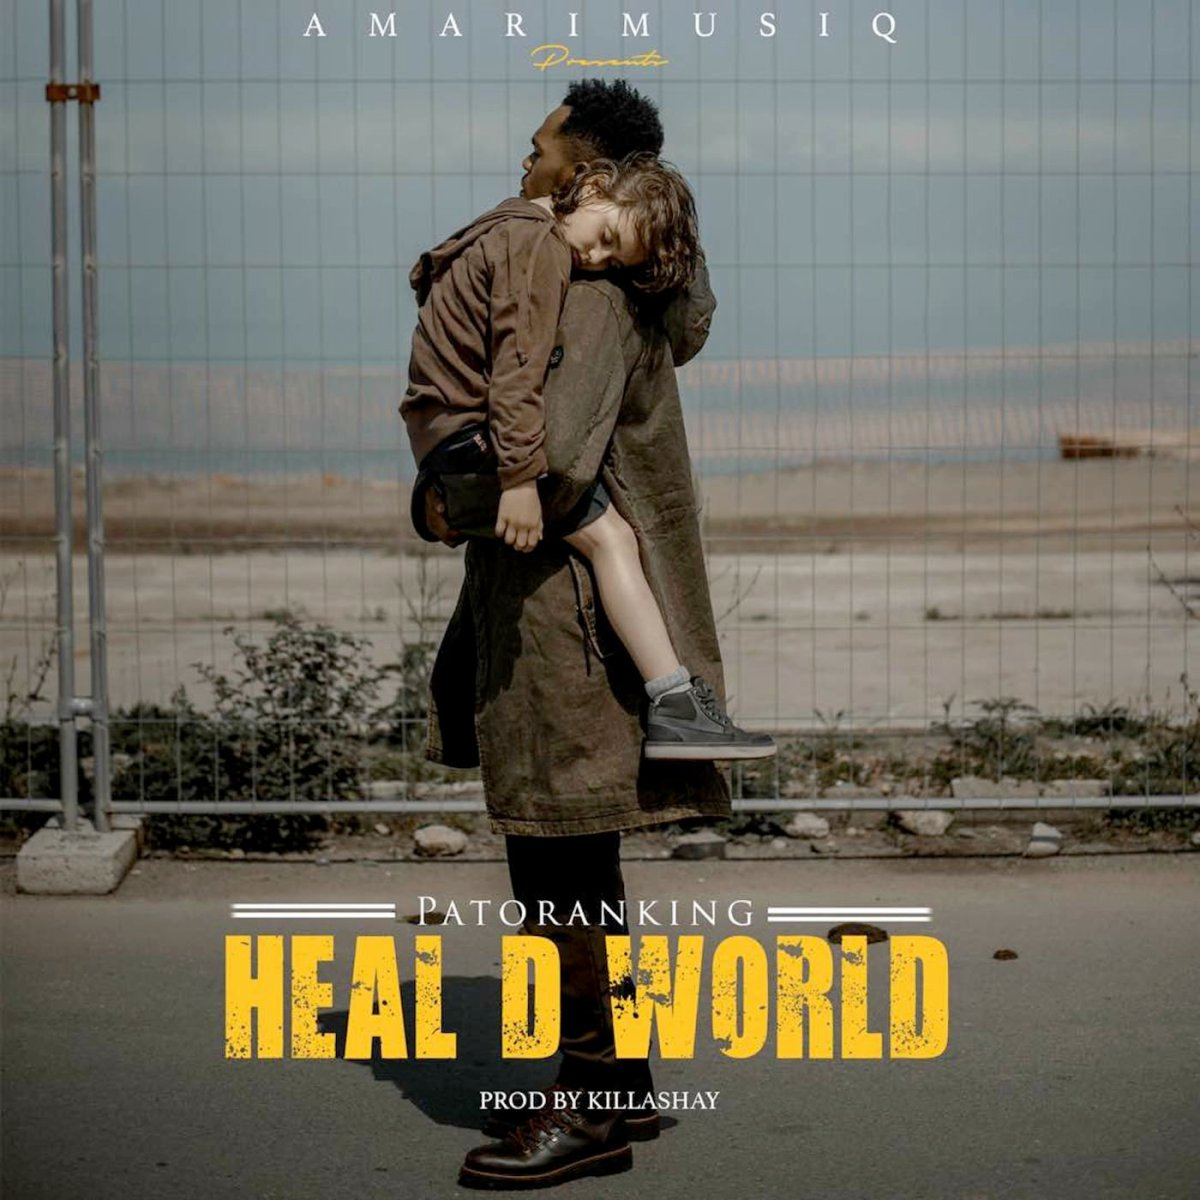 Patoranking - Heal D World (Prod. by Killshay)